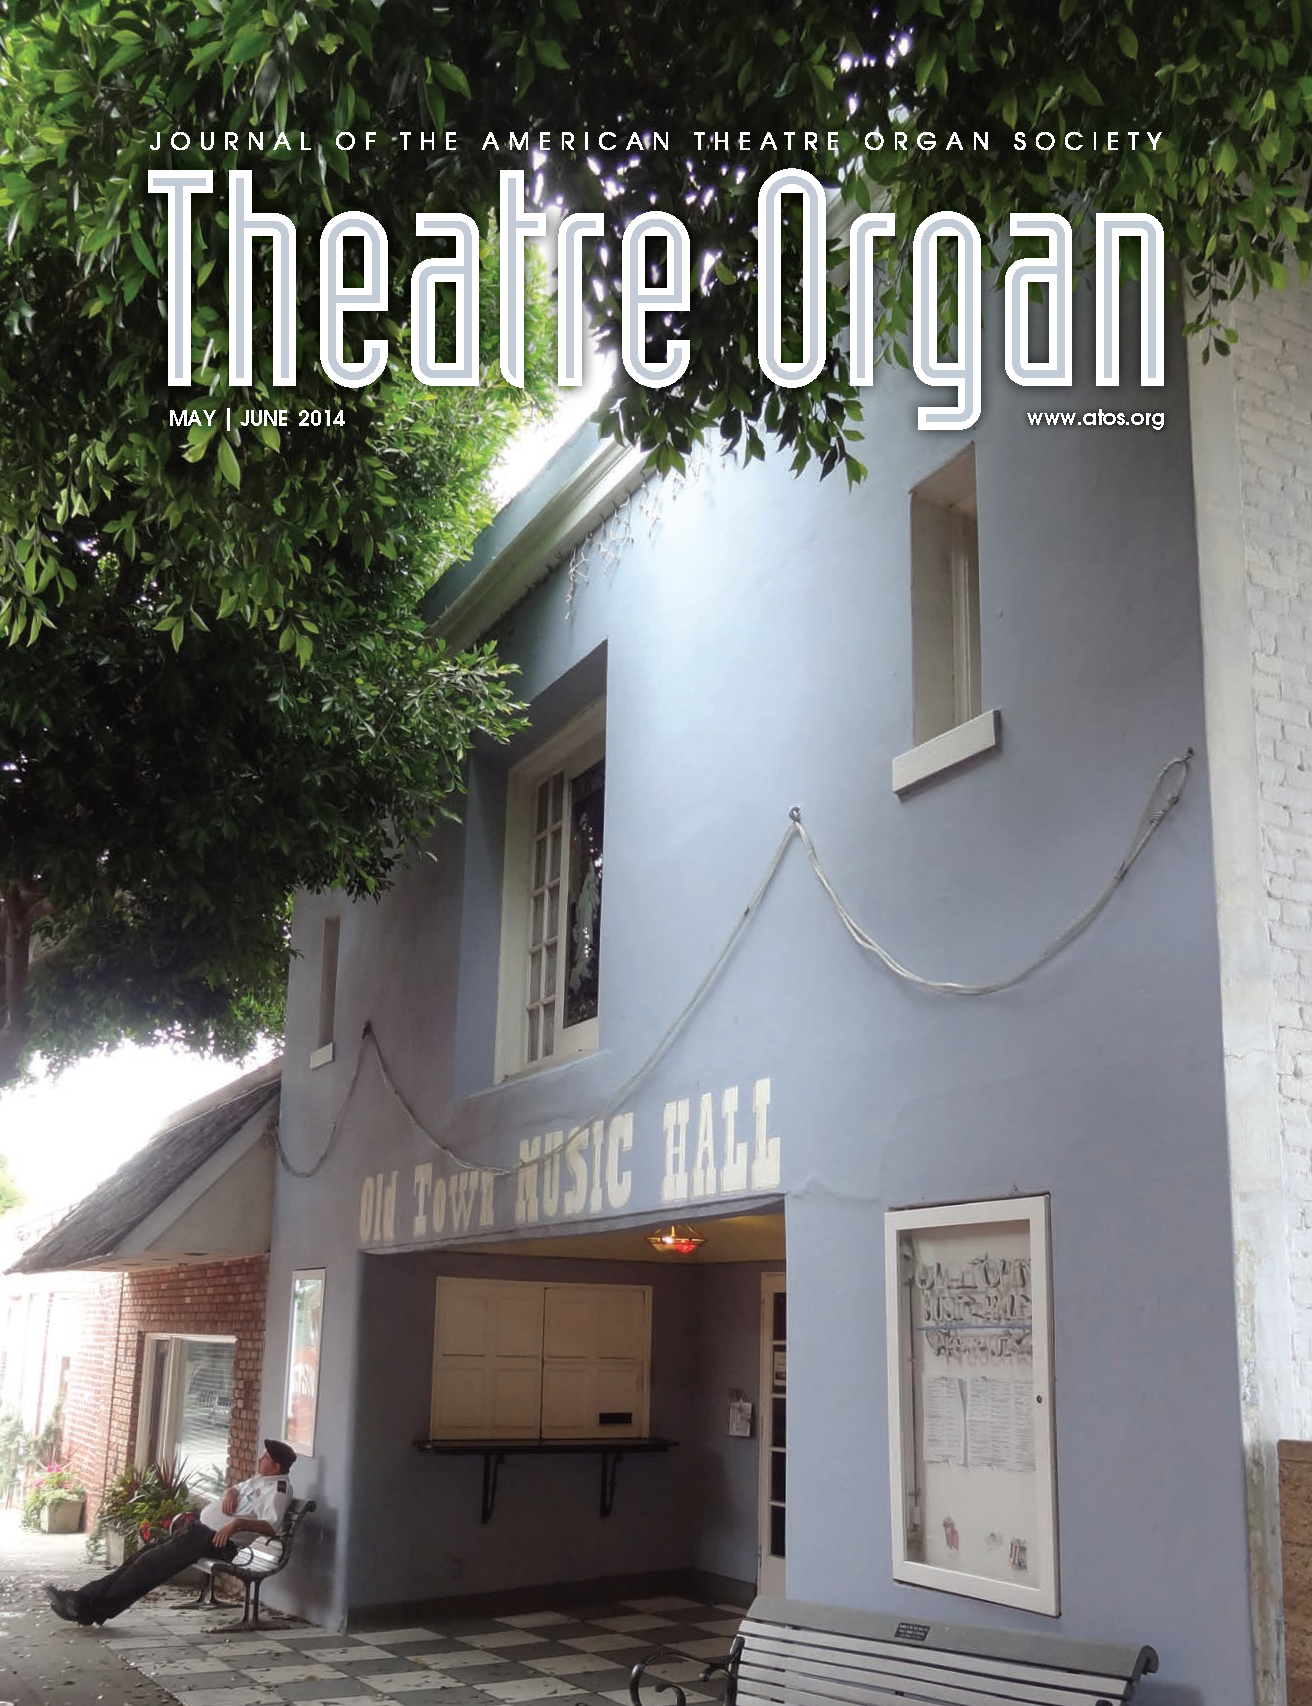 Theatre Organ, May - June 2014, Volume 56, Number 3